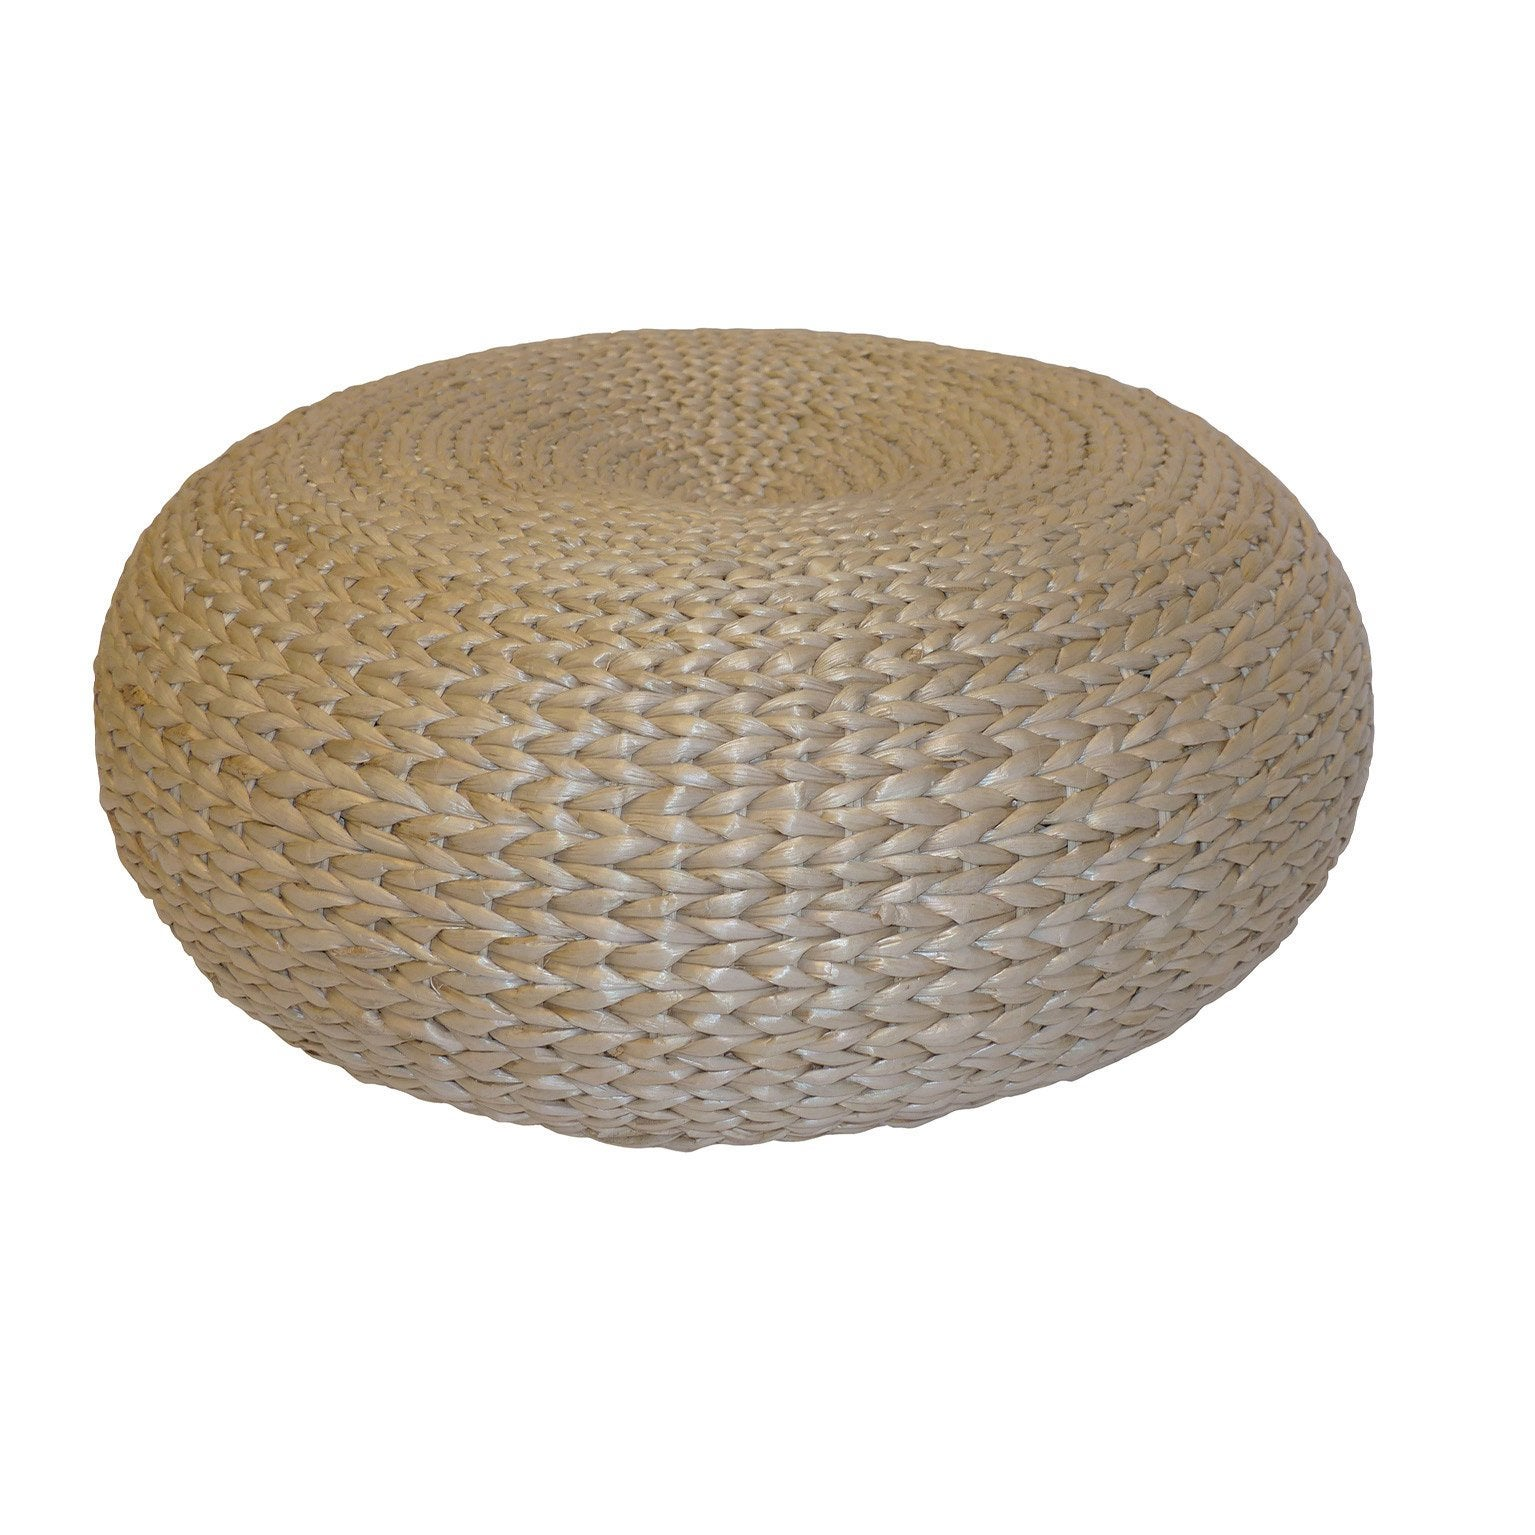 Pouf Tressage, naturel l.50 x H.15 cm